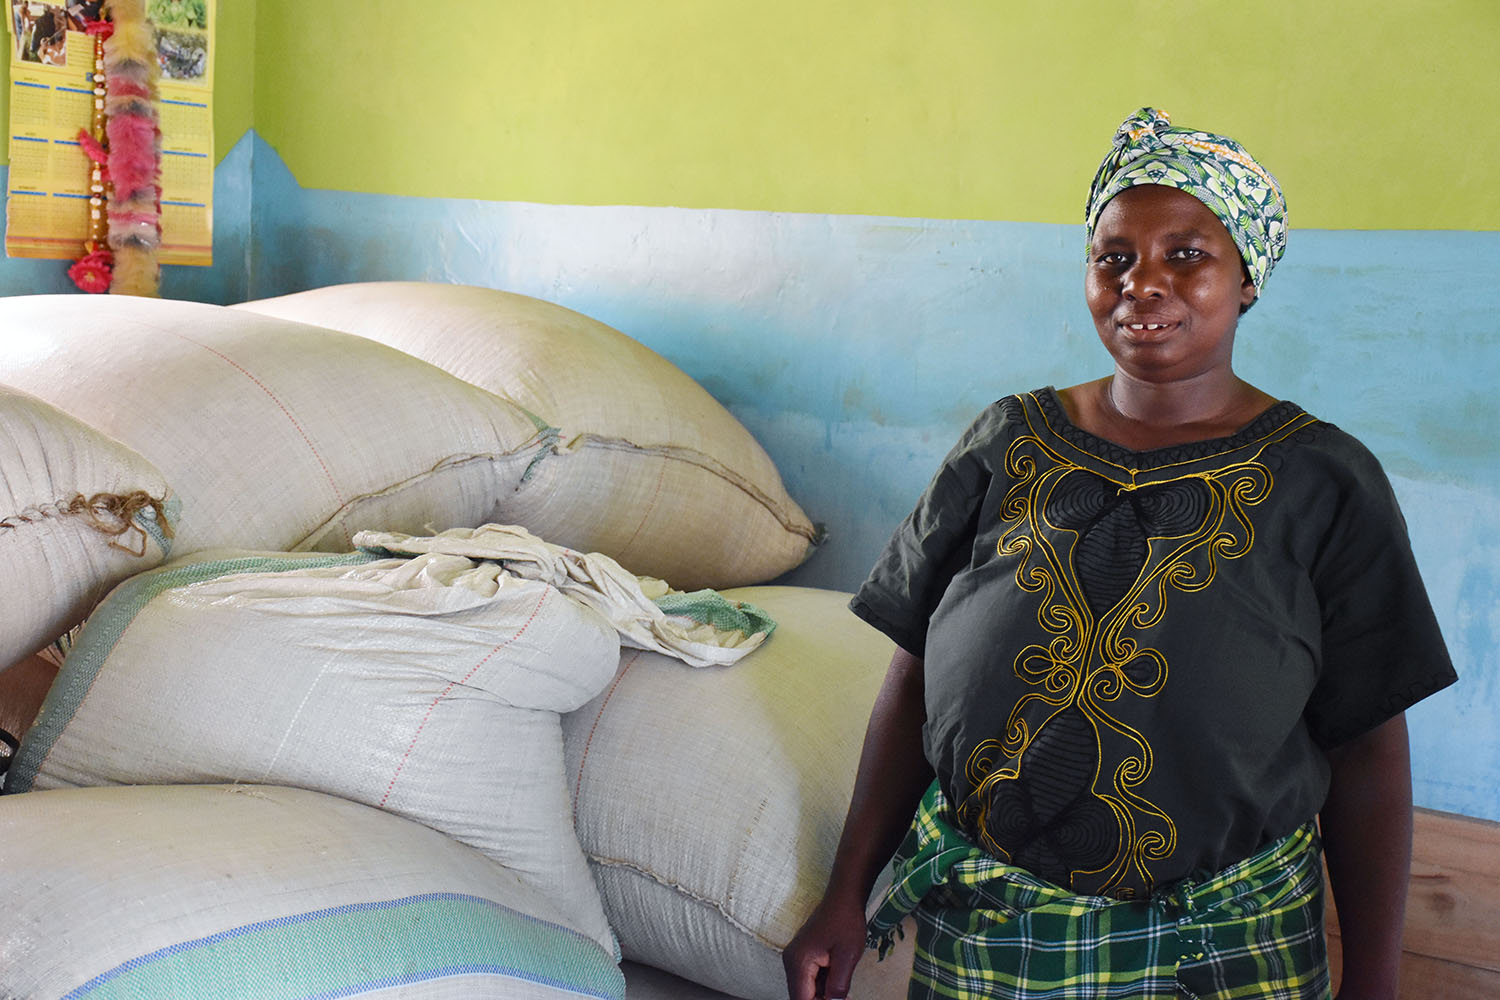 Eliamani Saitati, a farmer in Olkolili village in northern Tanzania, shows her harvest from HB513, a variety that is both nitrogen-use efficient and drought tolerant.